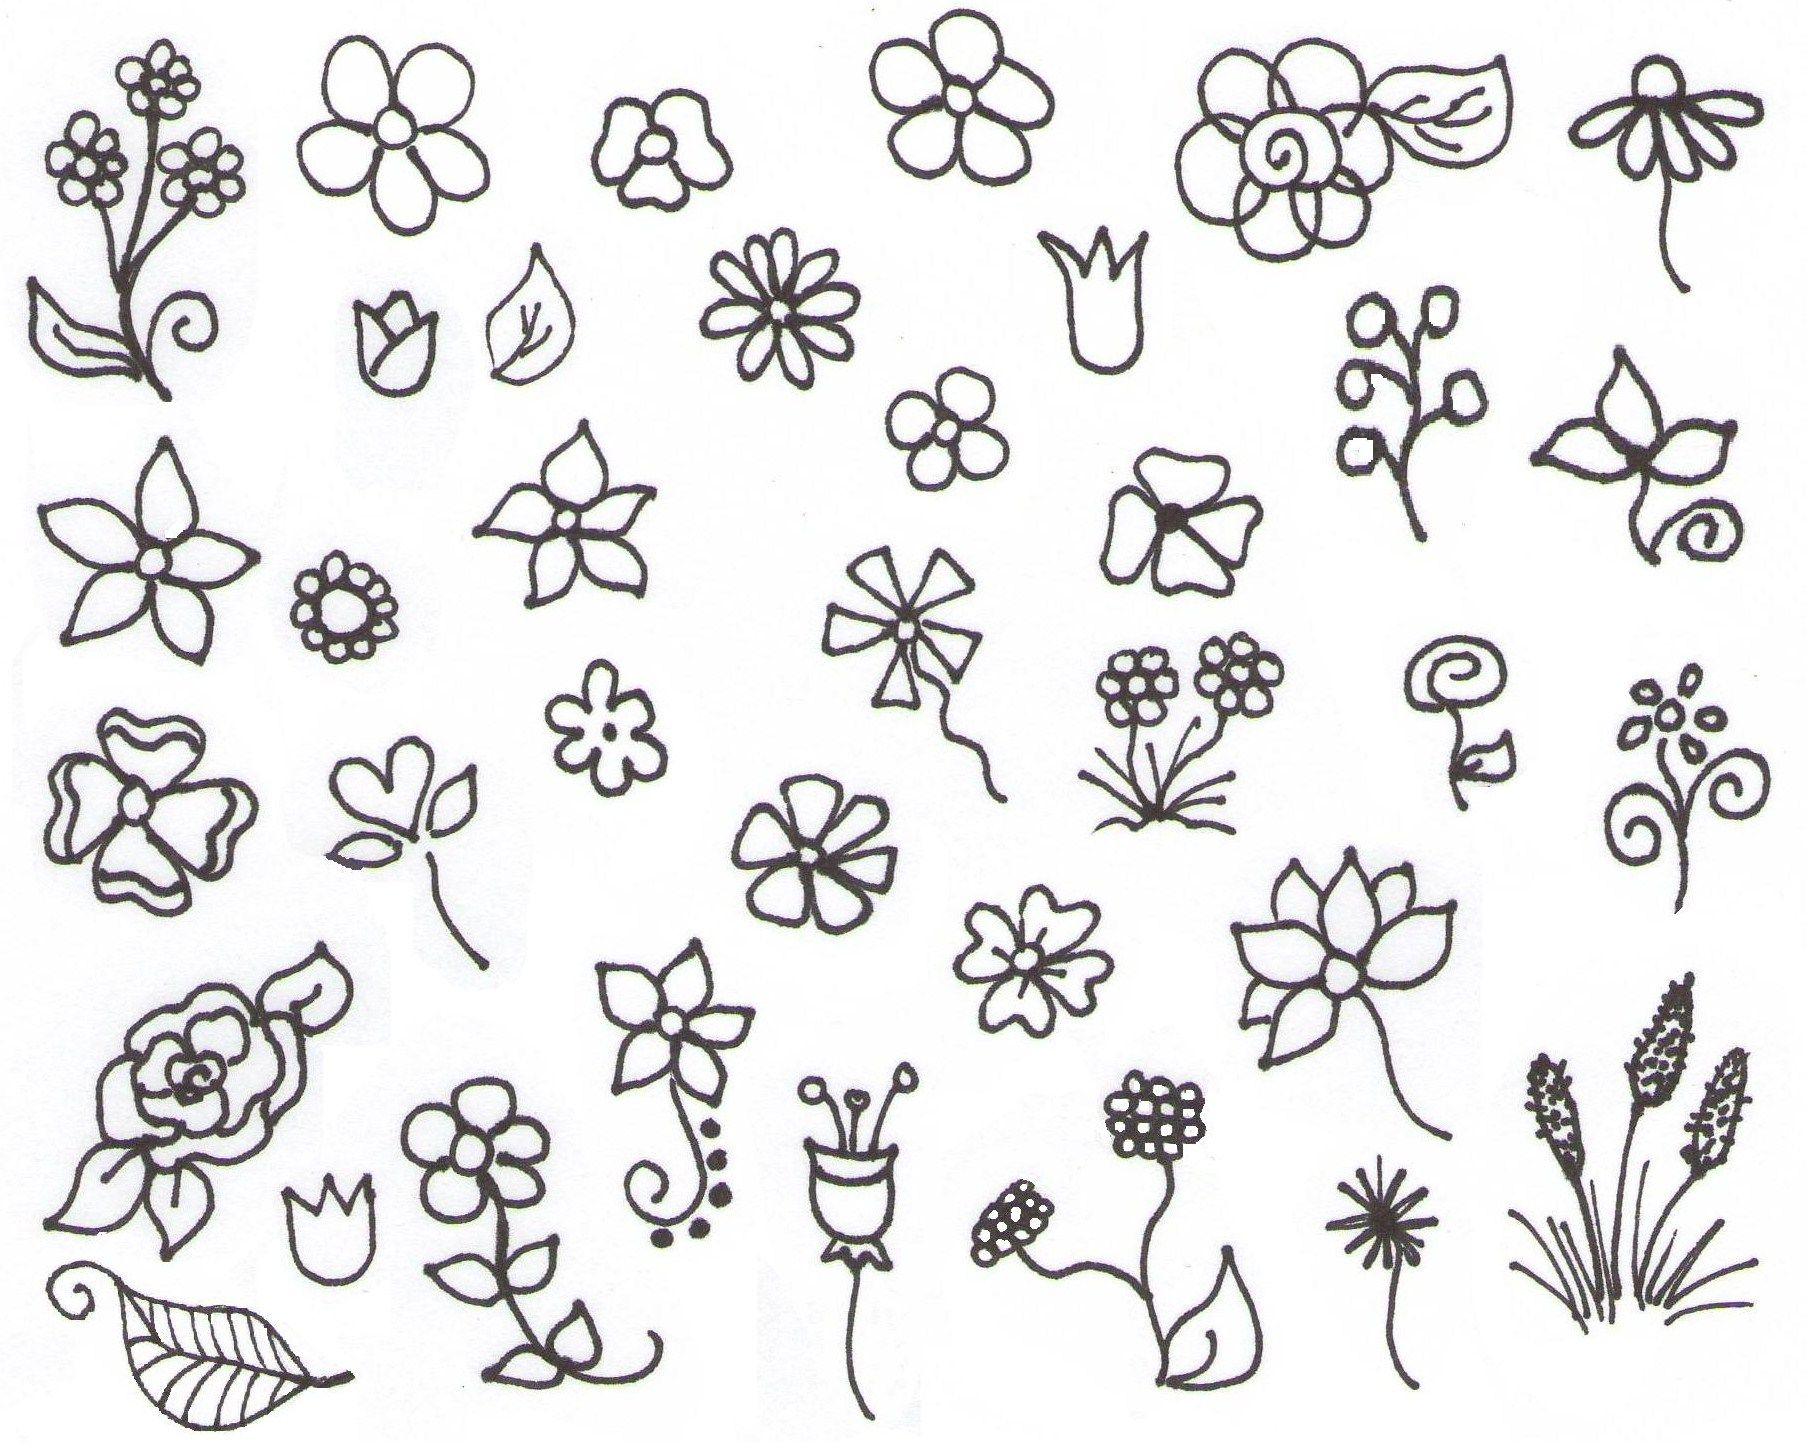 My Inspiration Flower Doodles Pinterest Flower Doodles Simple Doodles And Doodle Ideas